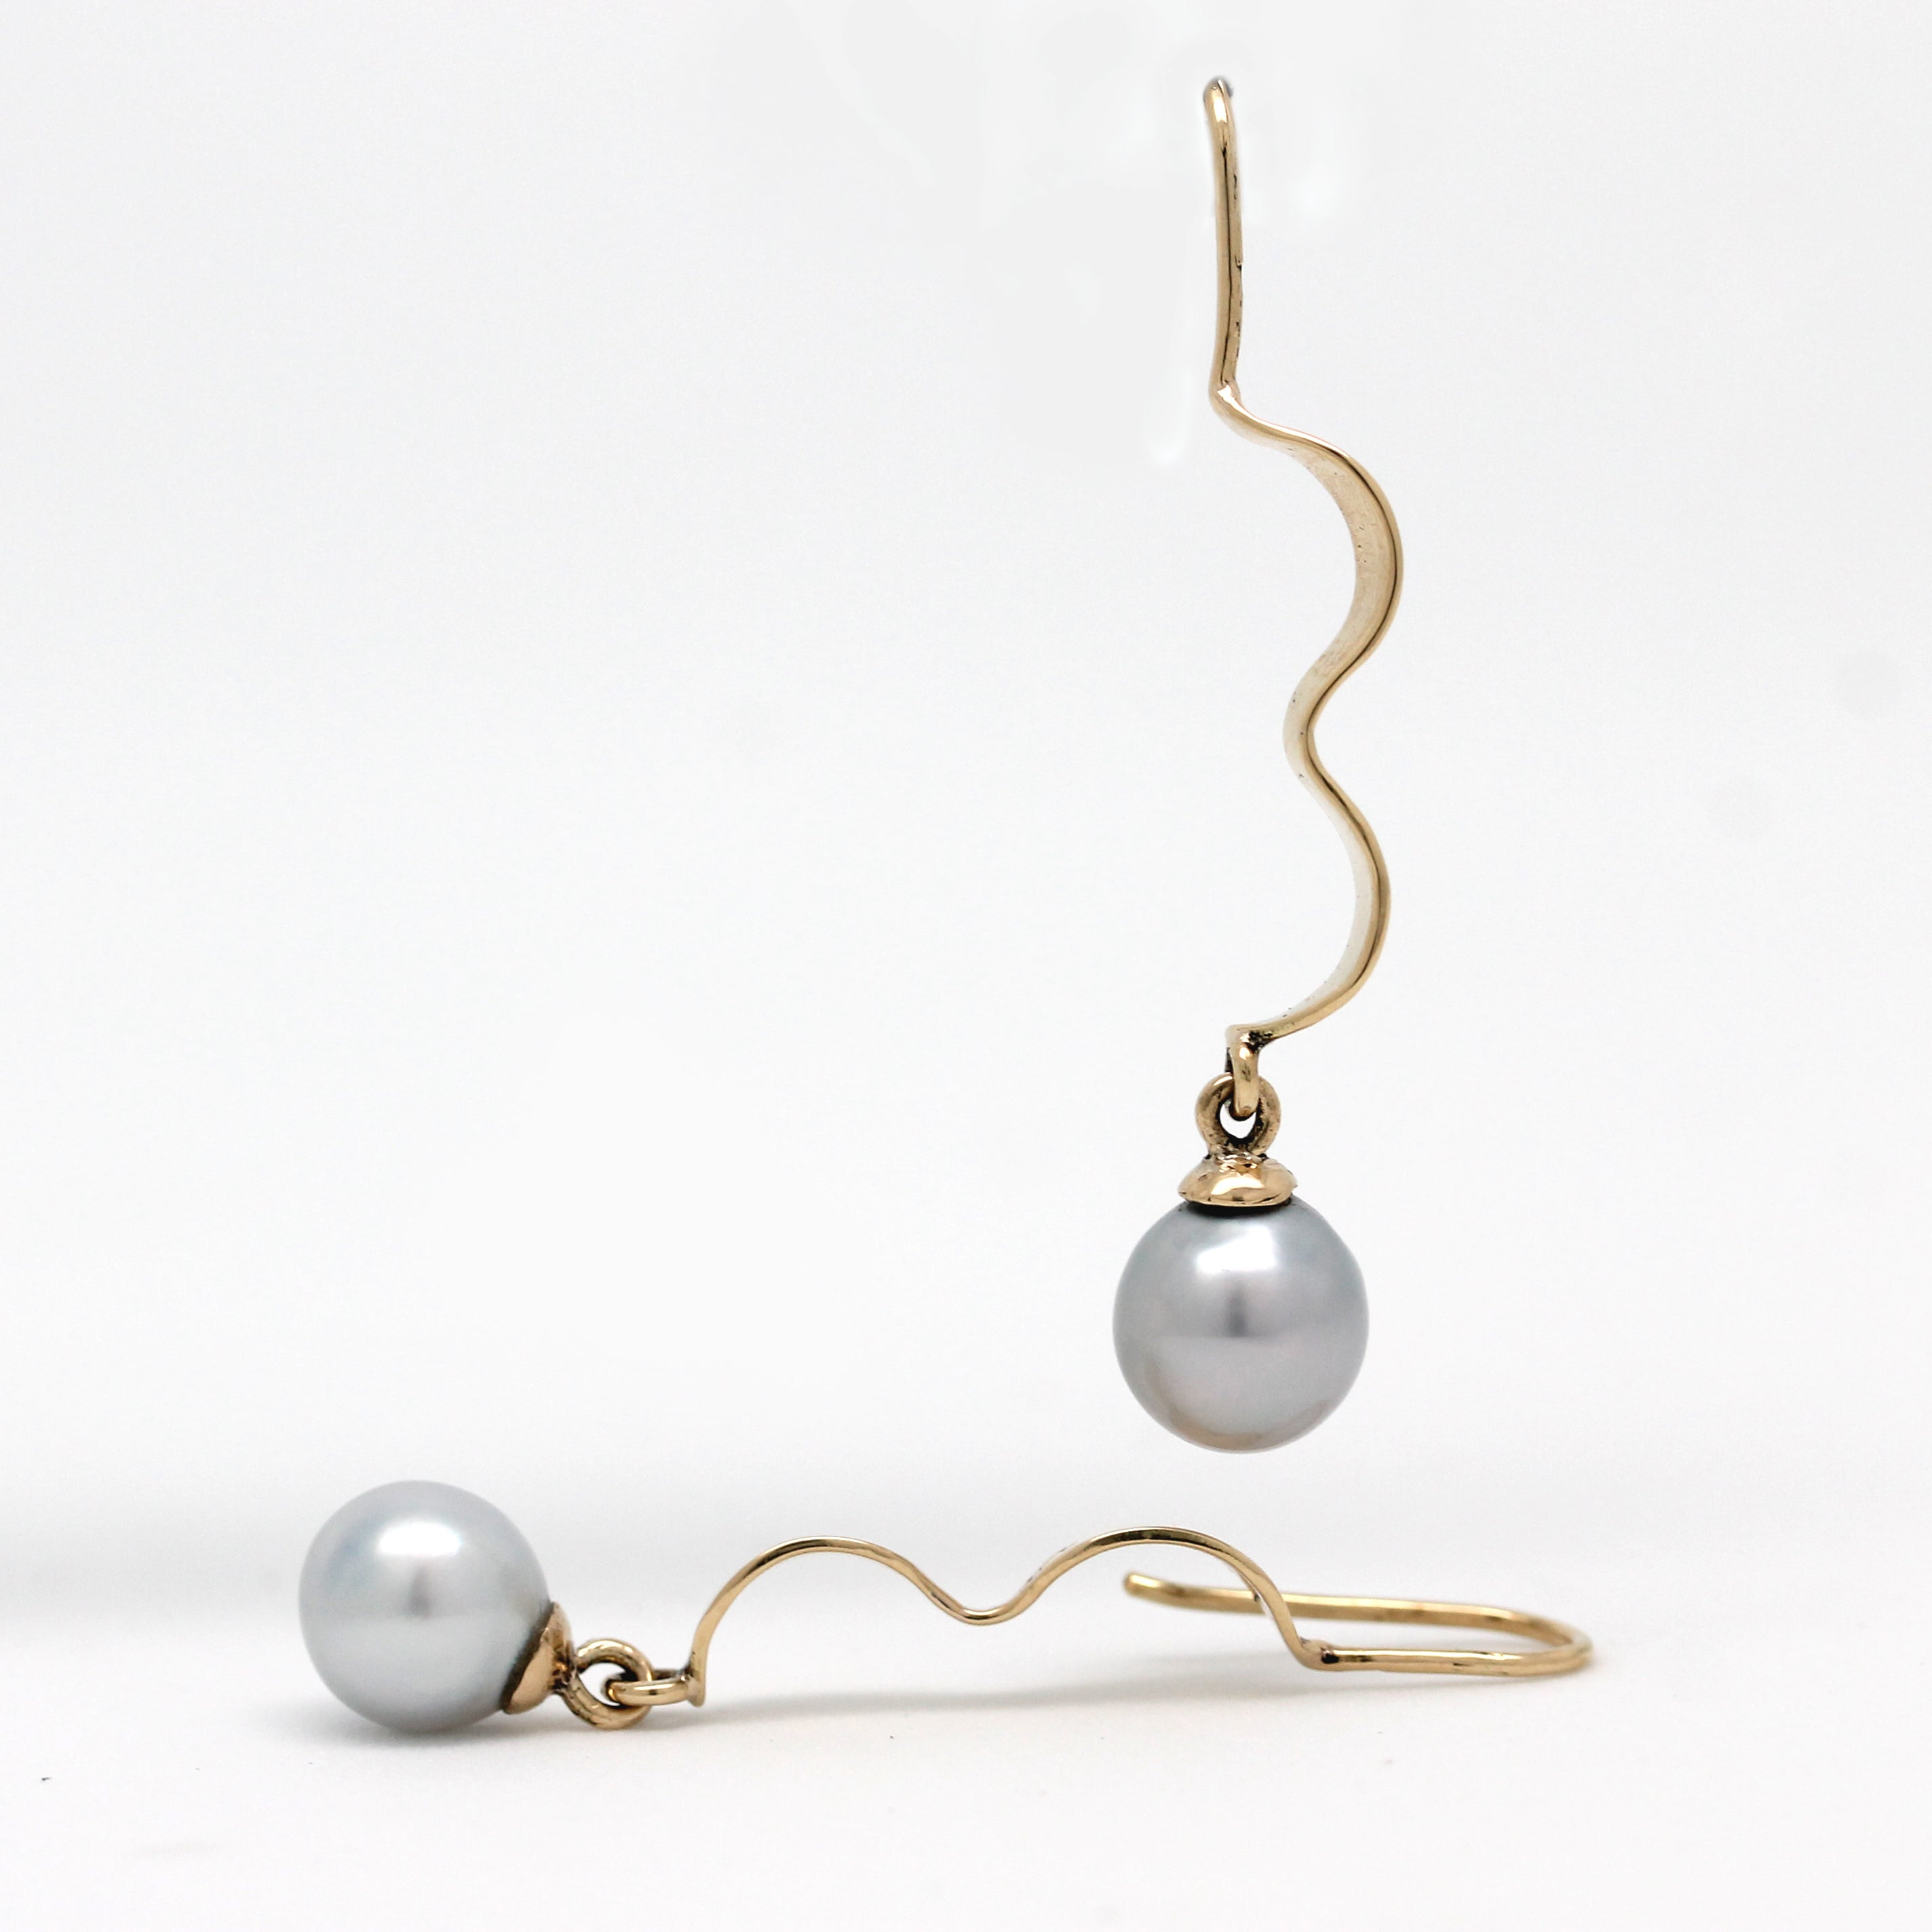 14K Yellow Gold Hanging Earrings with Cortez Pearls